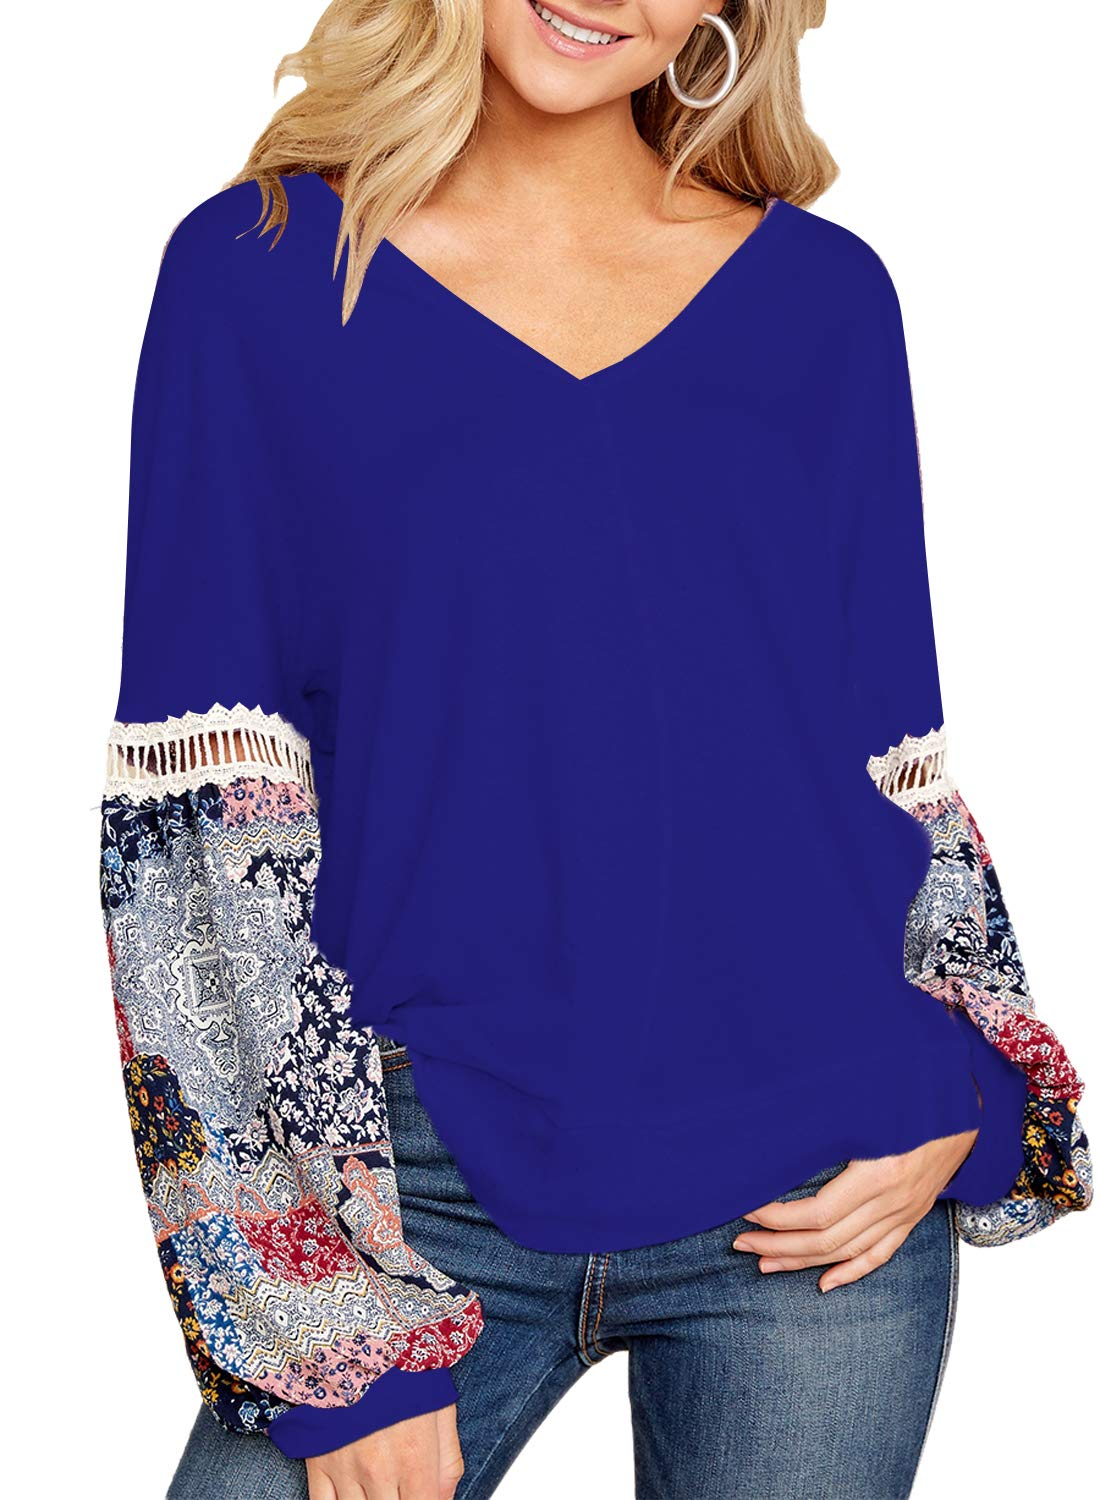 FARYSAYS Women's Boho Sexy V Neck Long Sleeve Floral Print Splice T-Shirt Tops Casual Blouse Blue Large by FARYSAYS (Image #1)